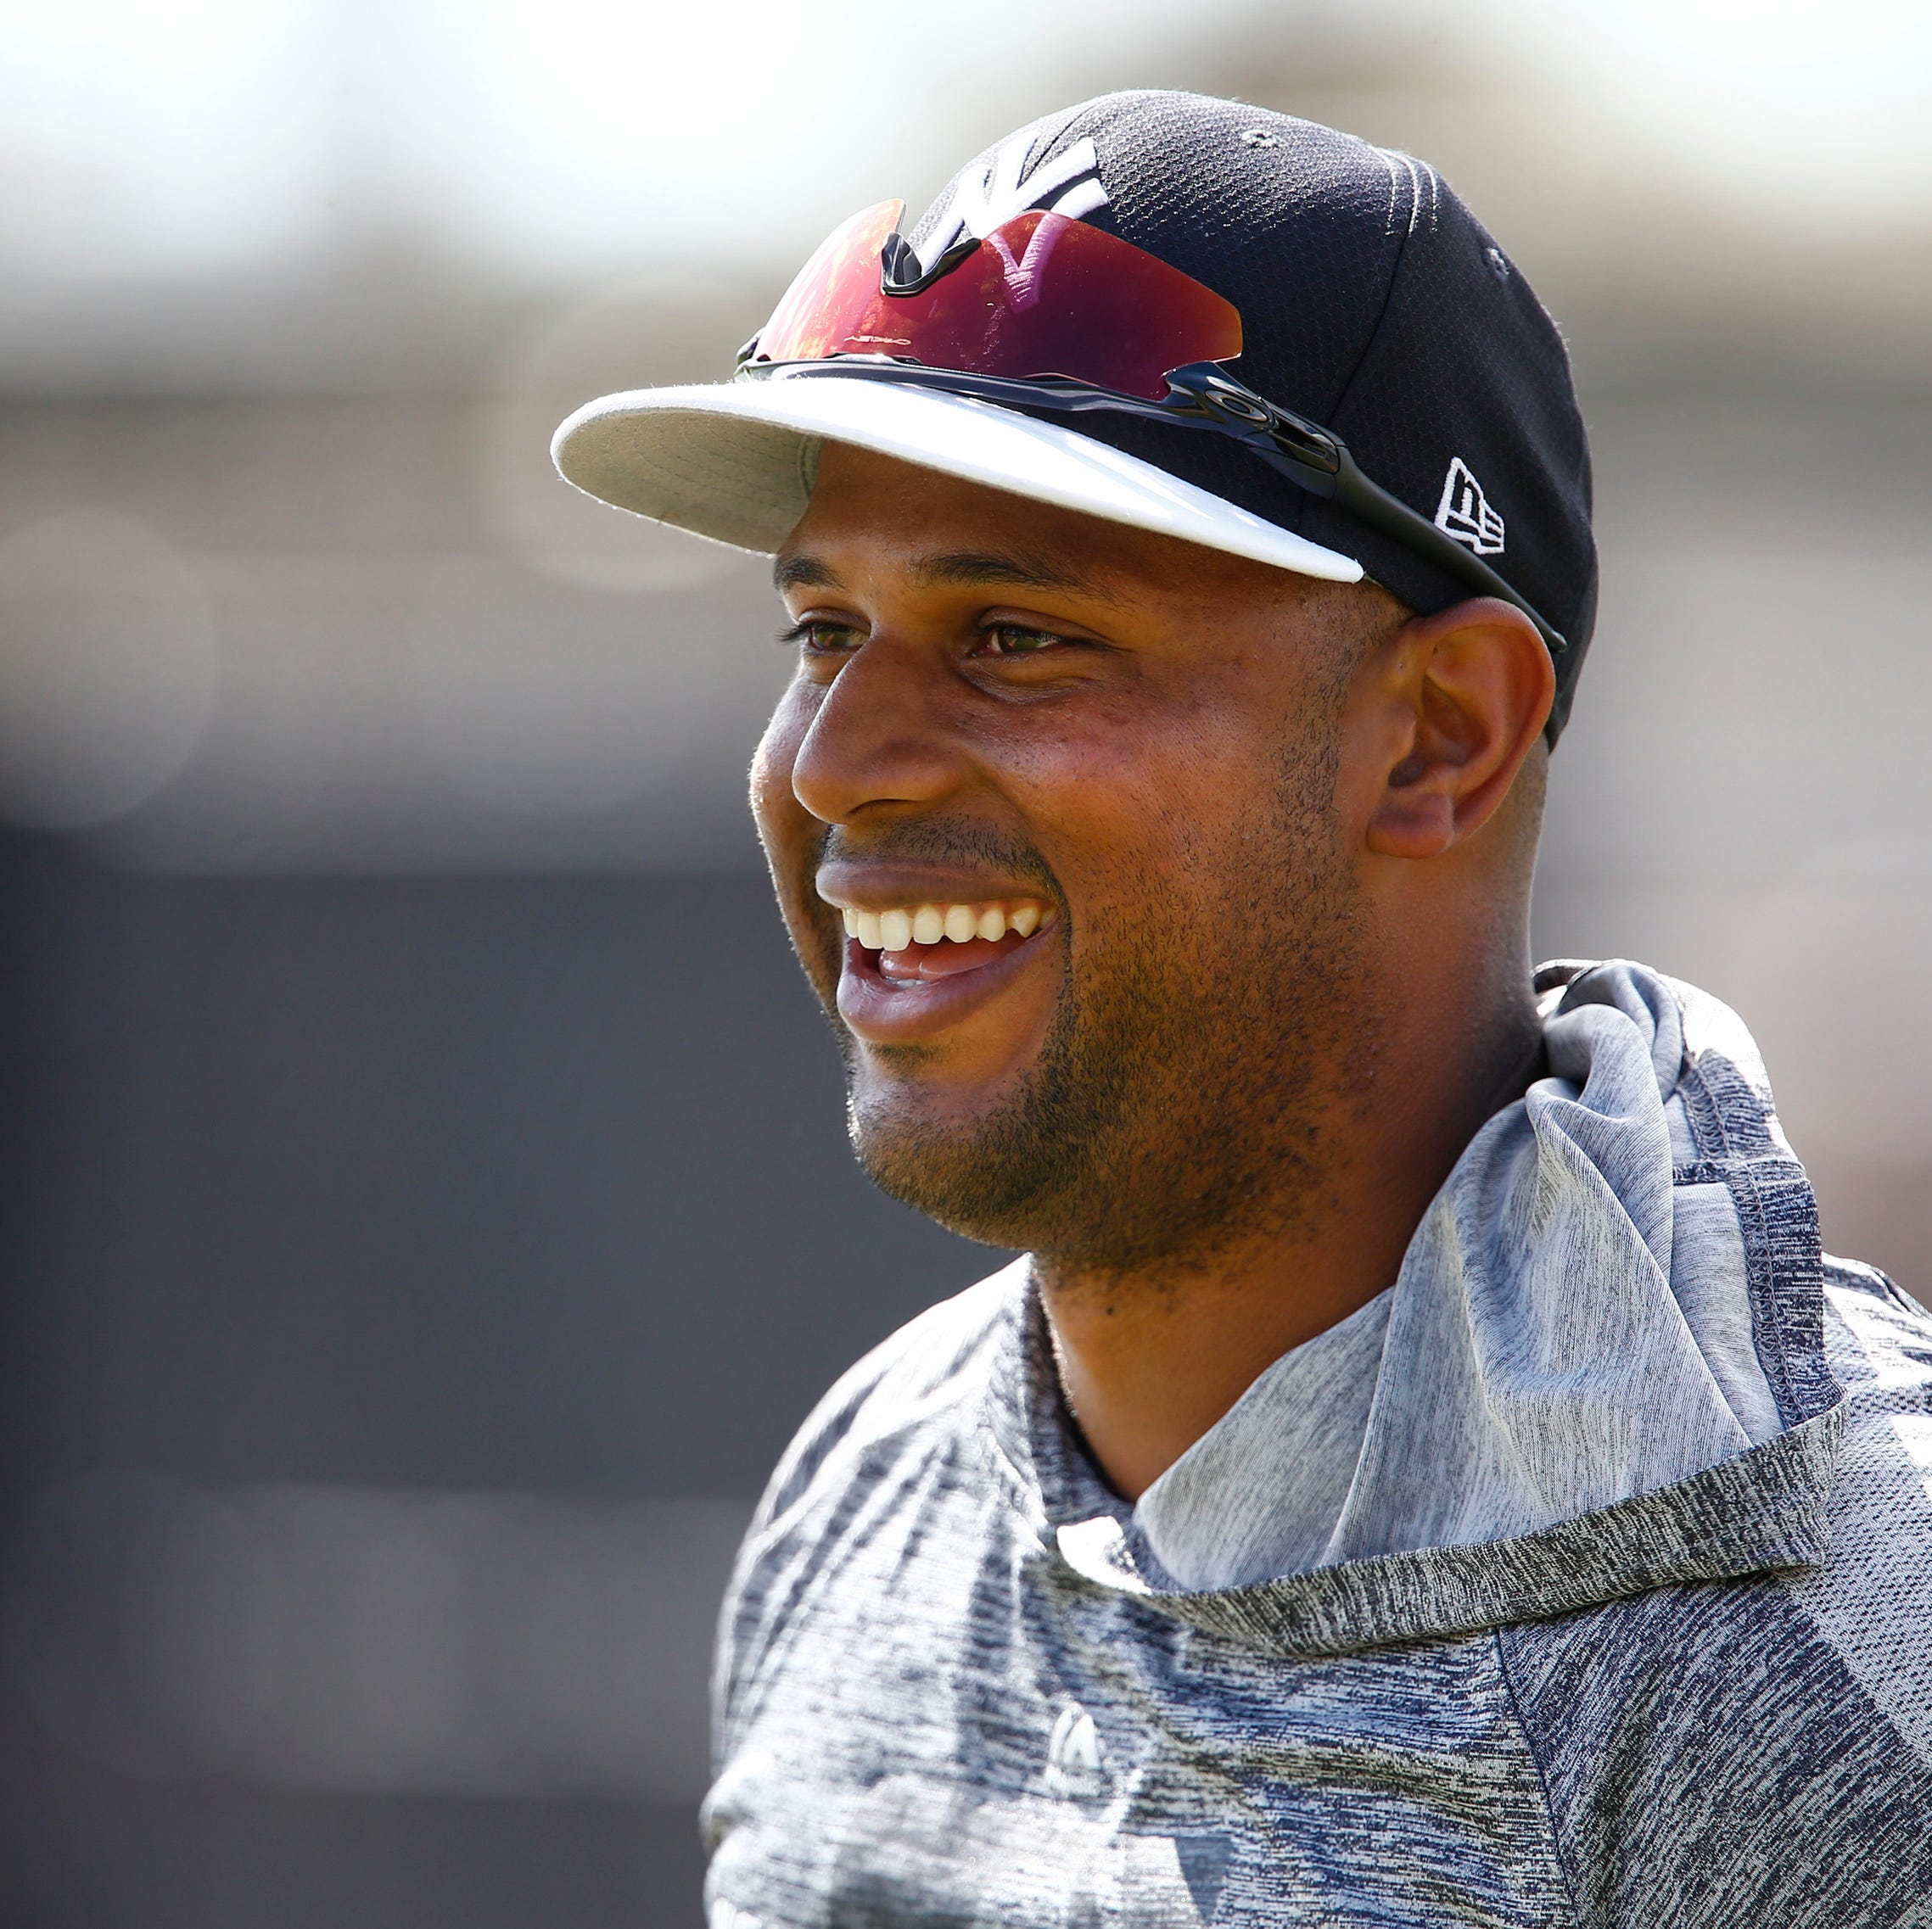 Yankees' Aaron Hicks moving closer to heading out on minor league rehab assignment